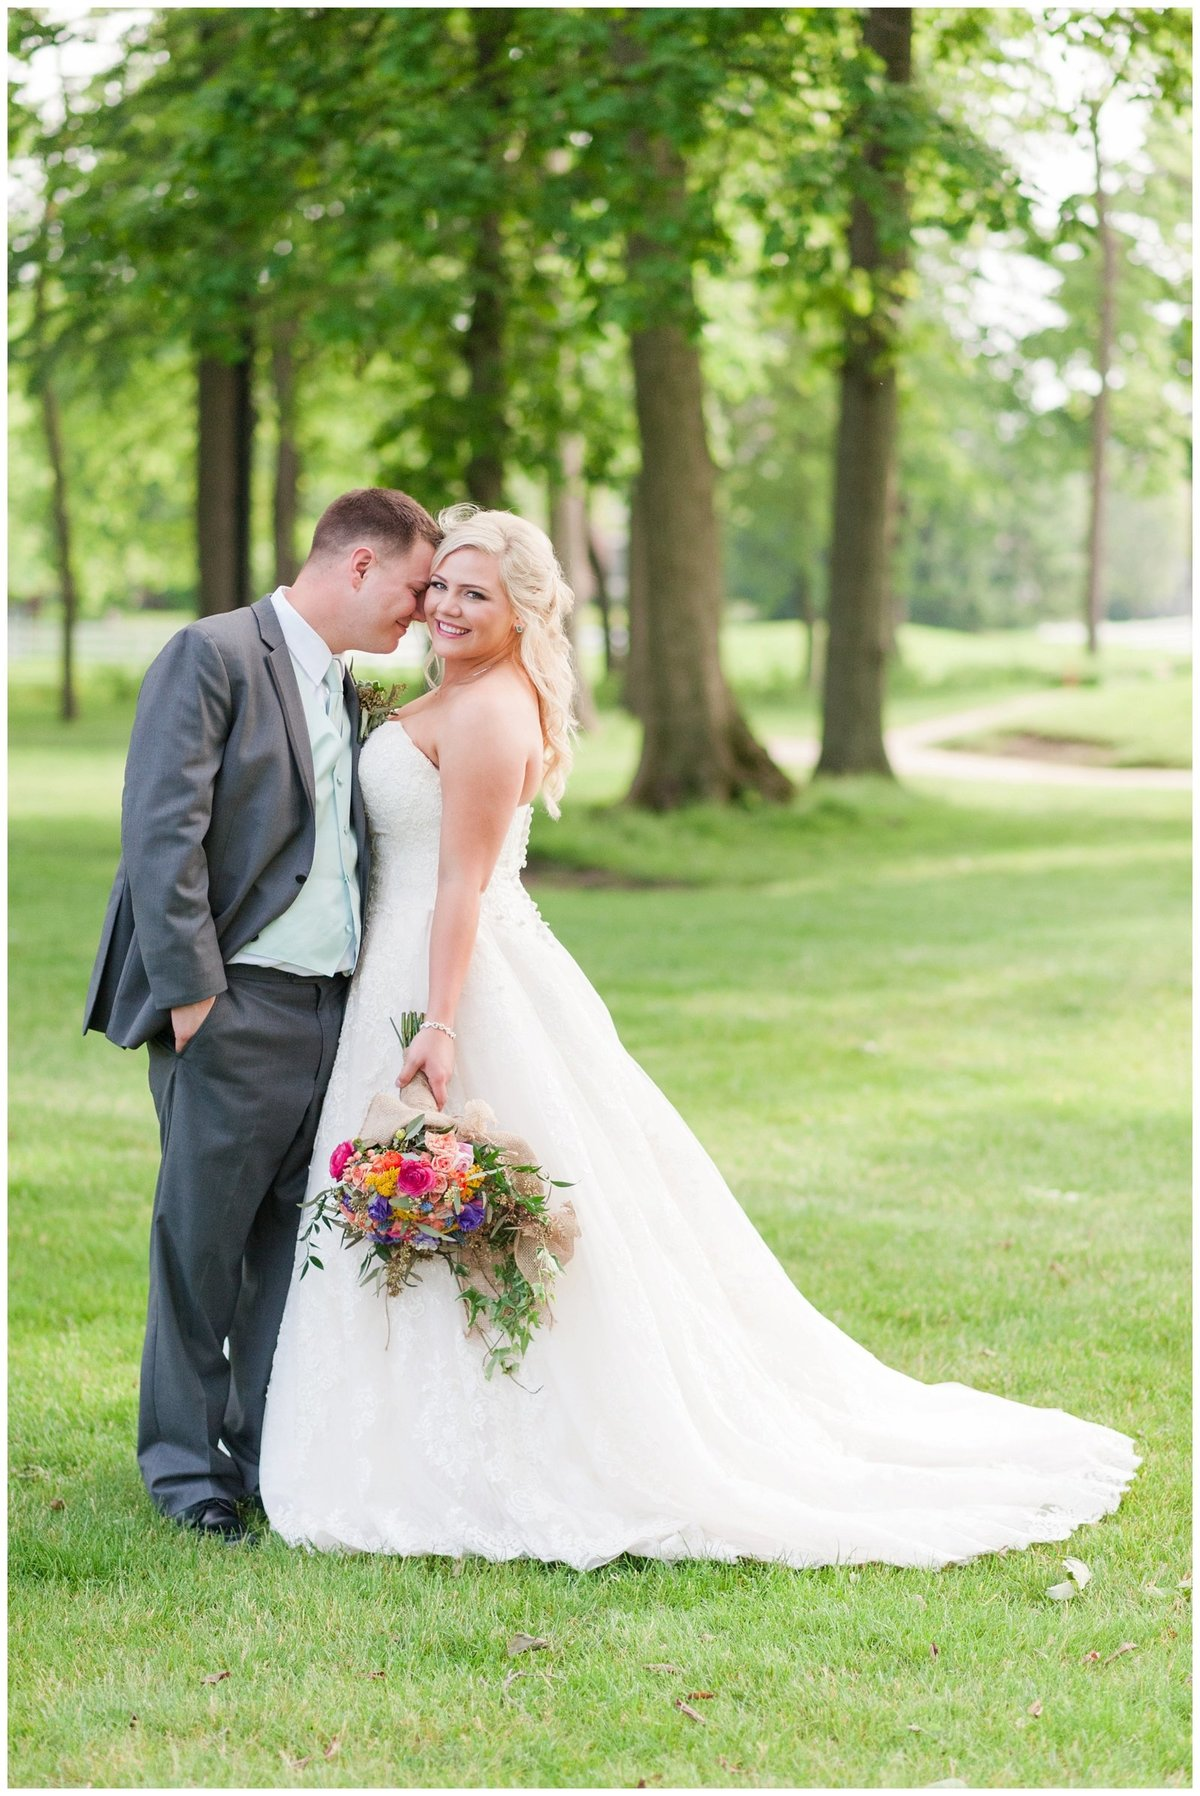 Heritage golf and country club wedding hilliard ohio wedding photos_0050